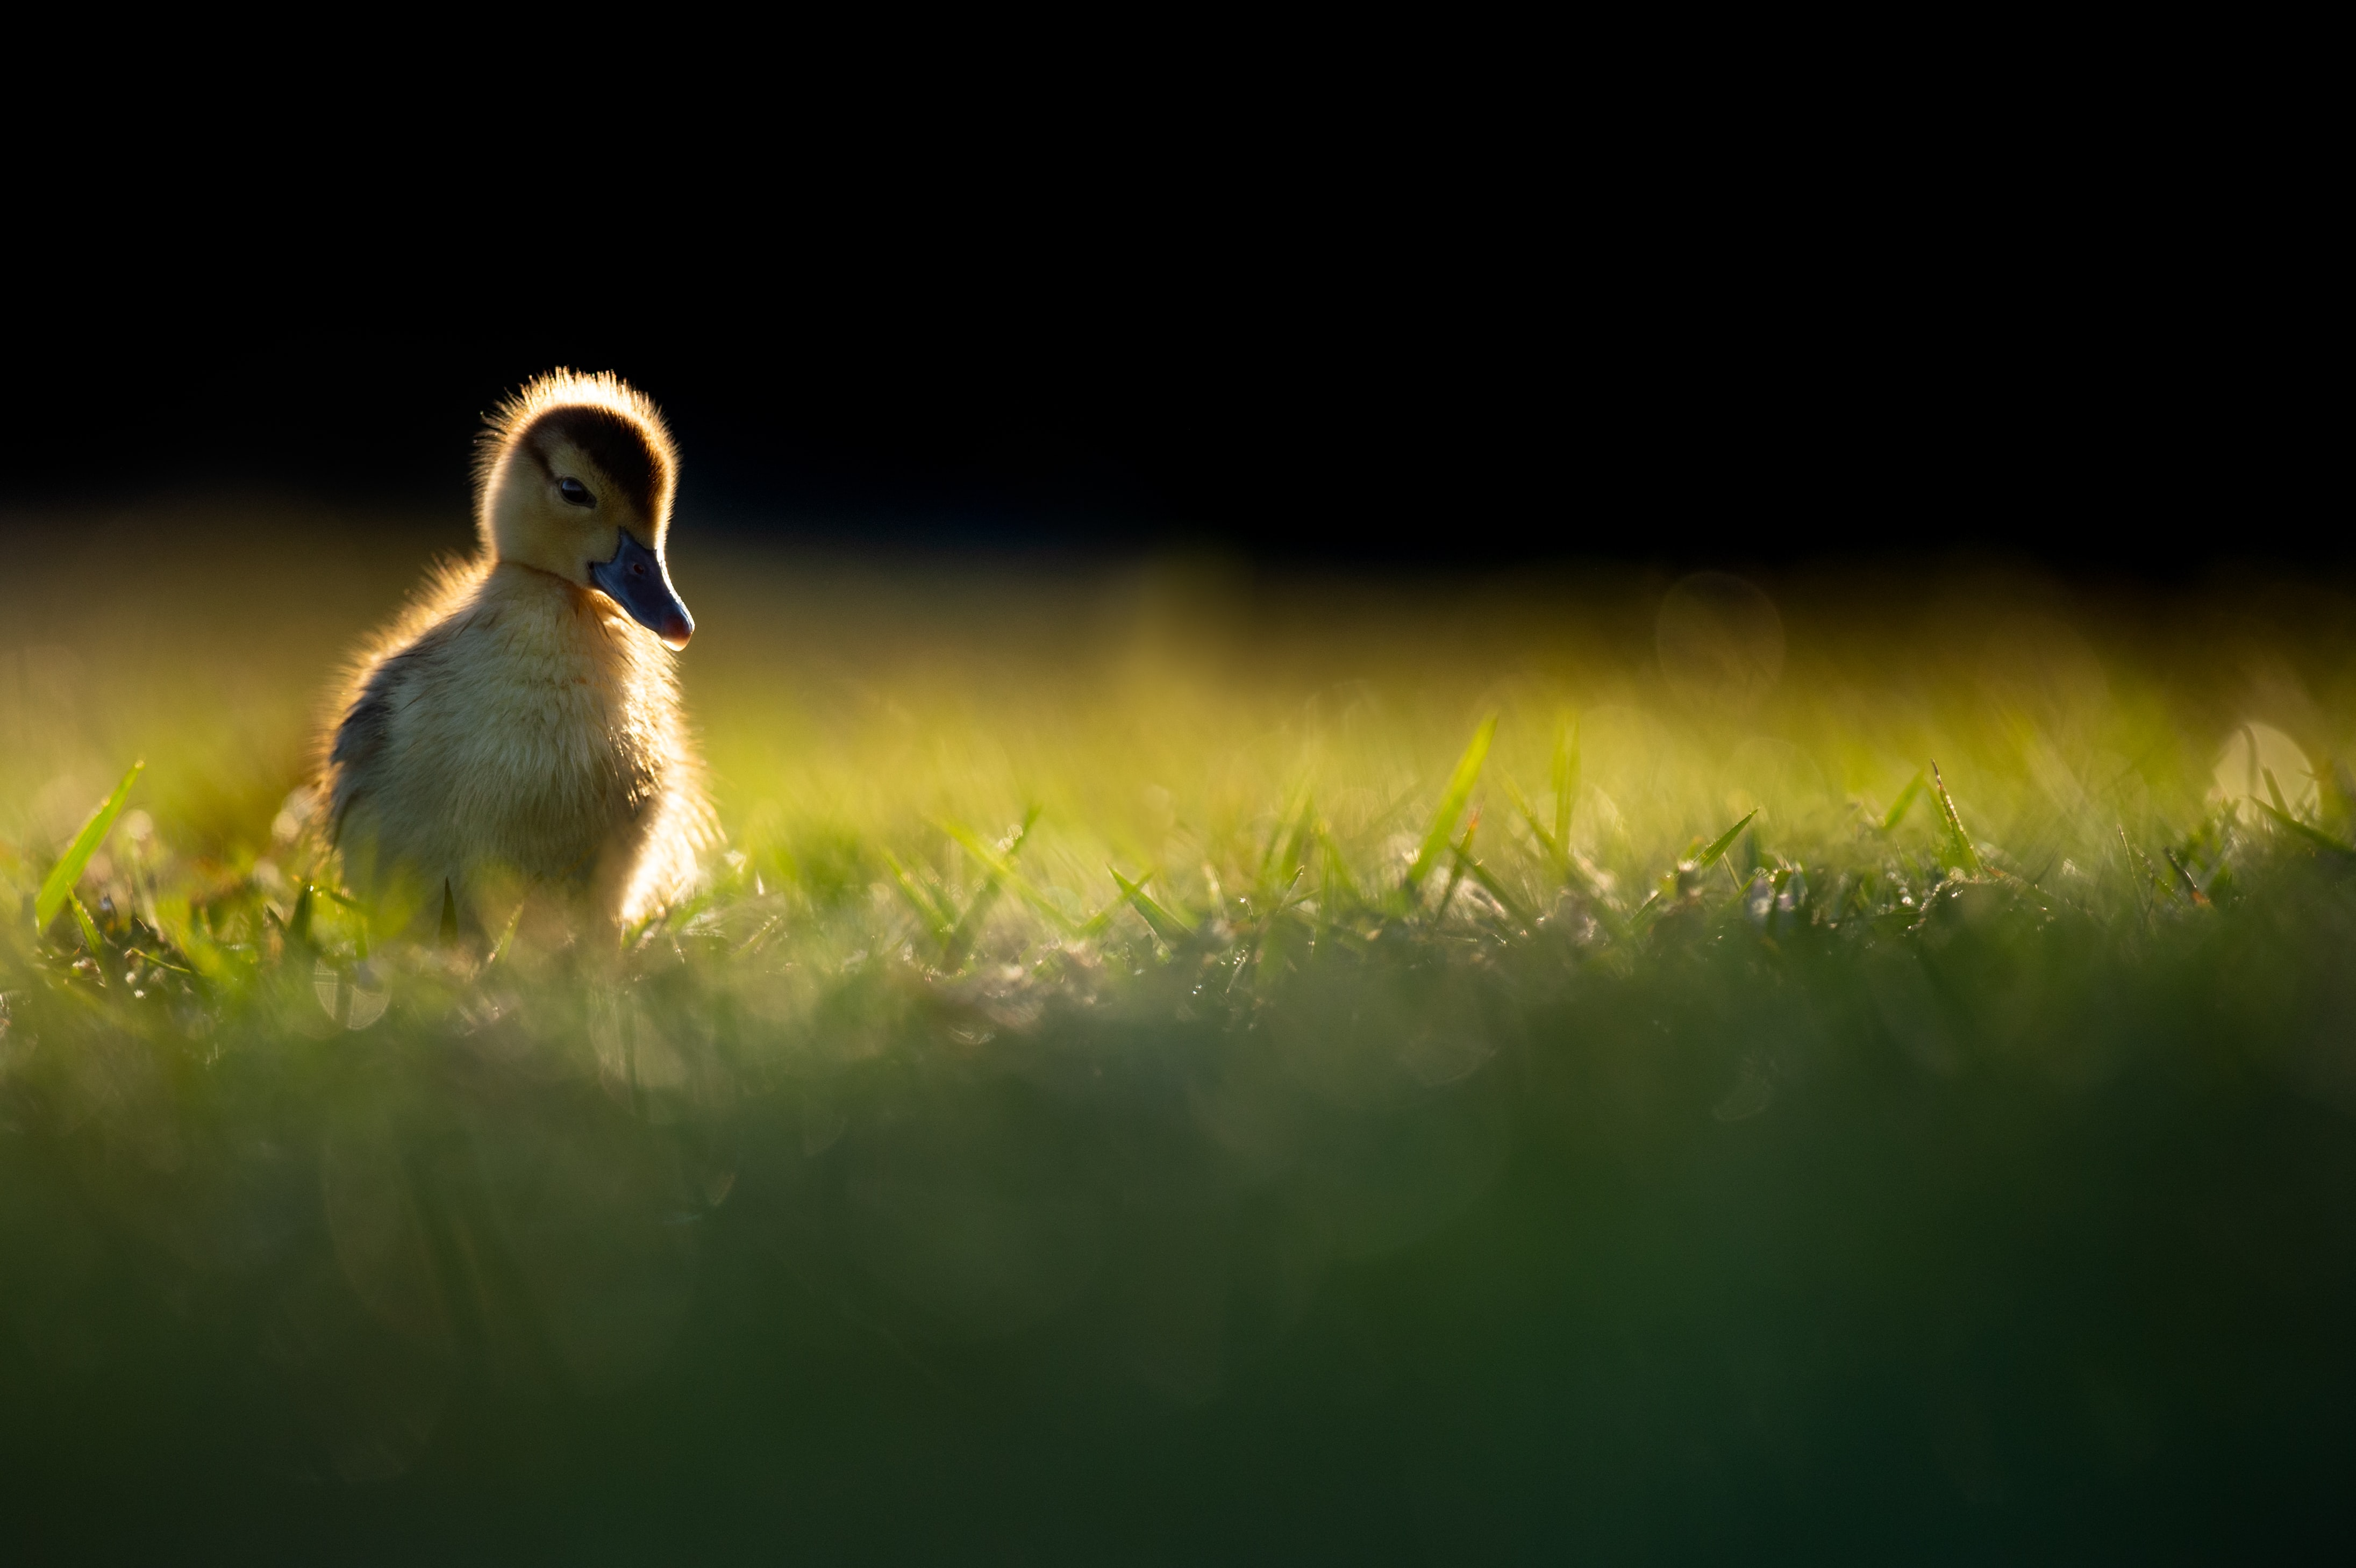 yellow and gray ducklings on green grass in selective-focus photography